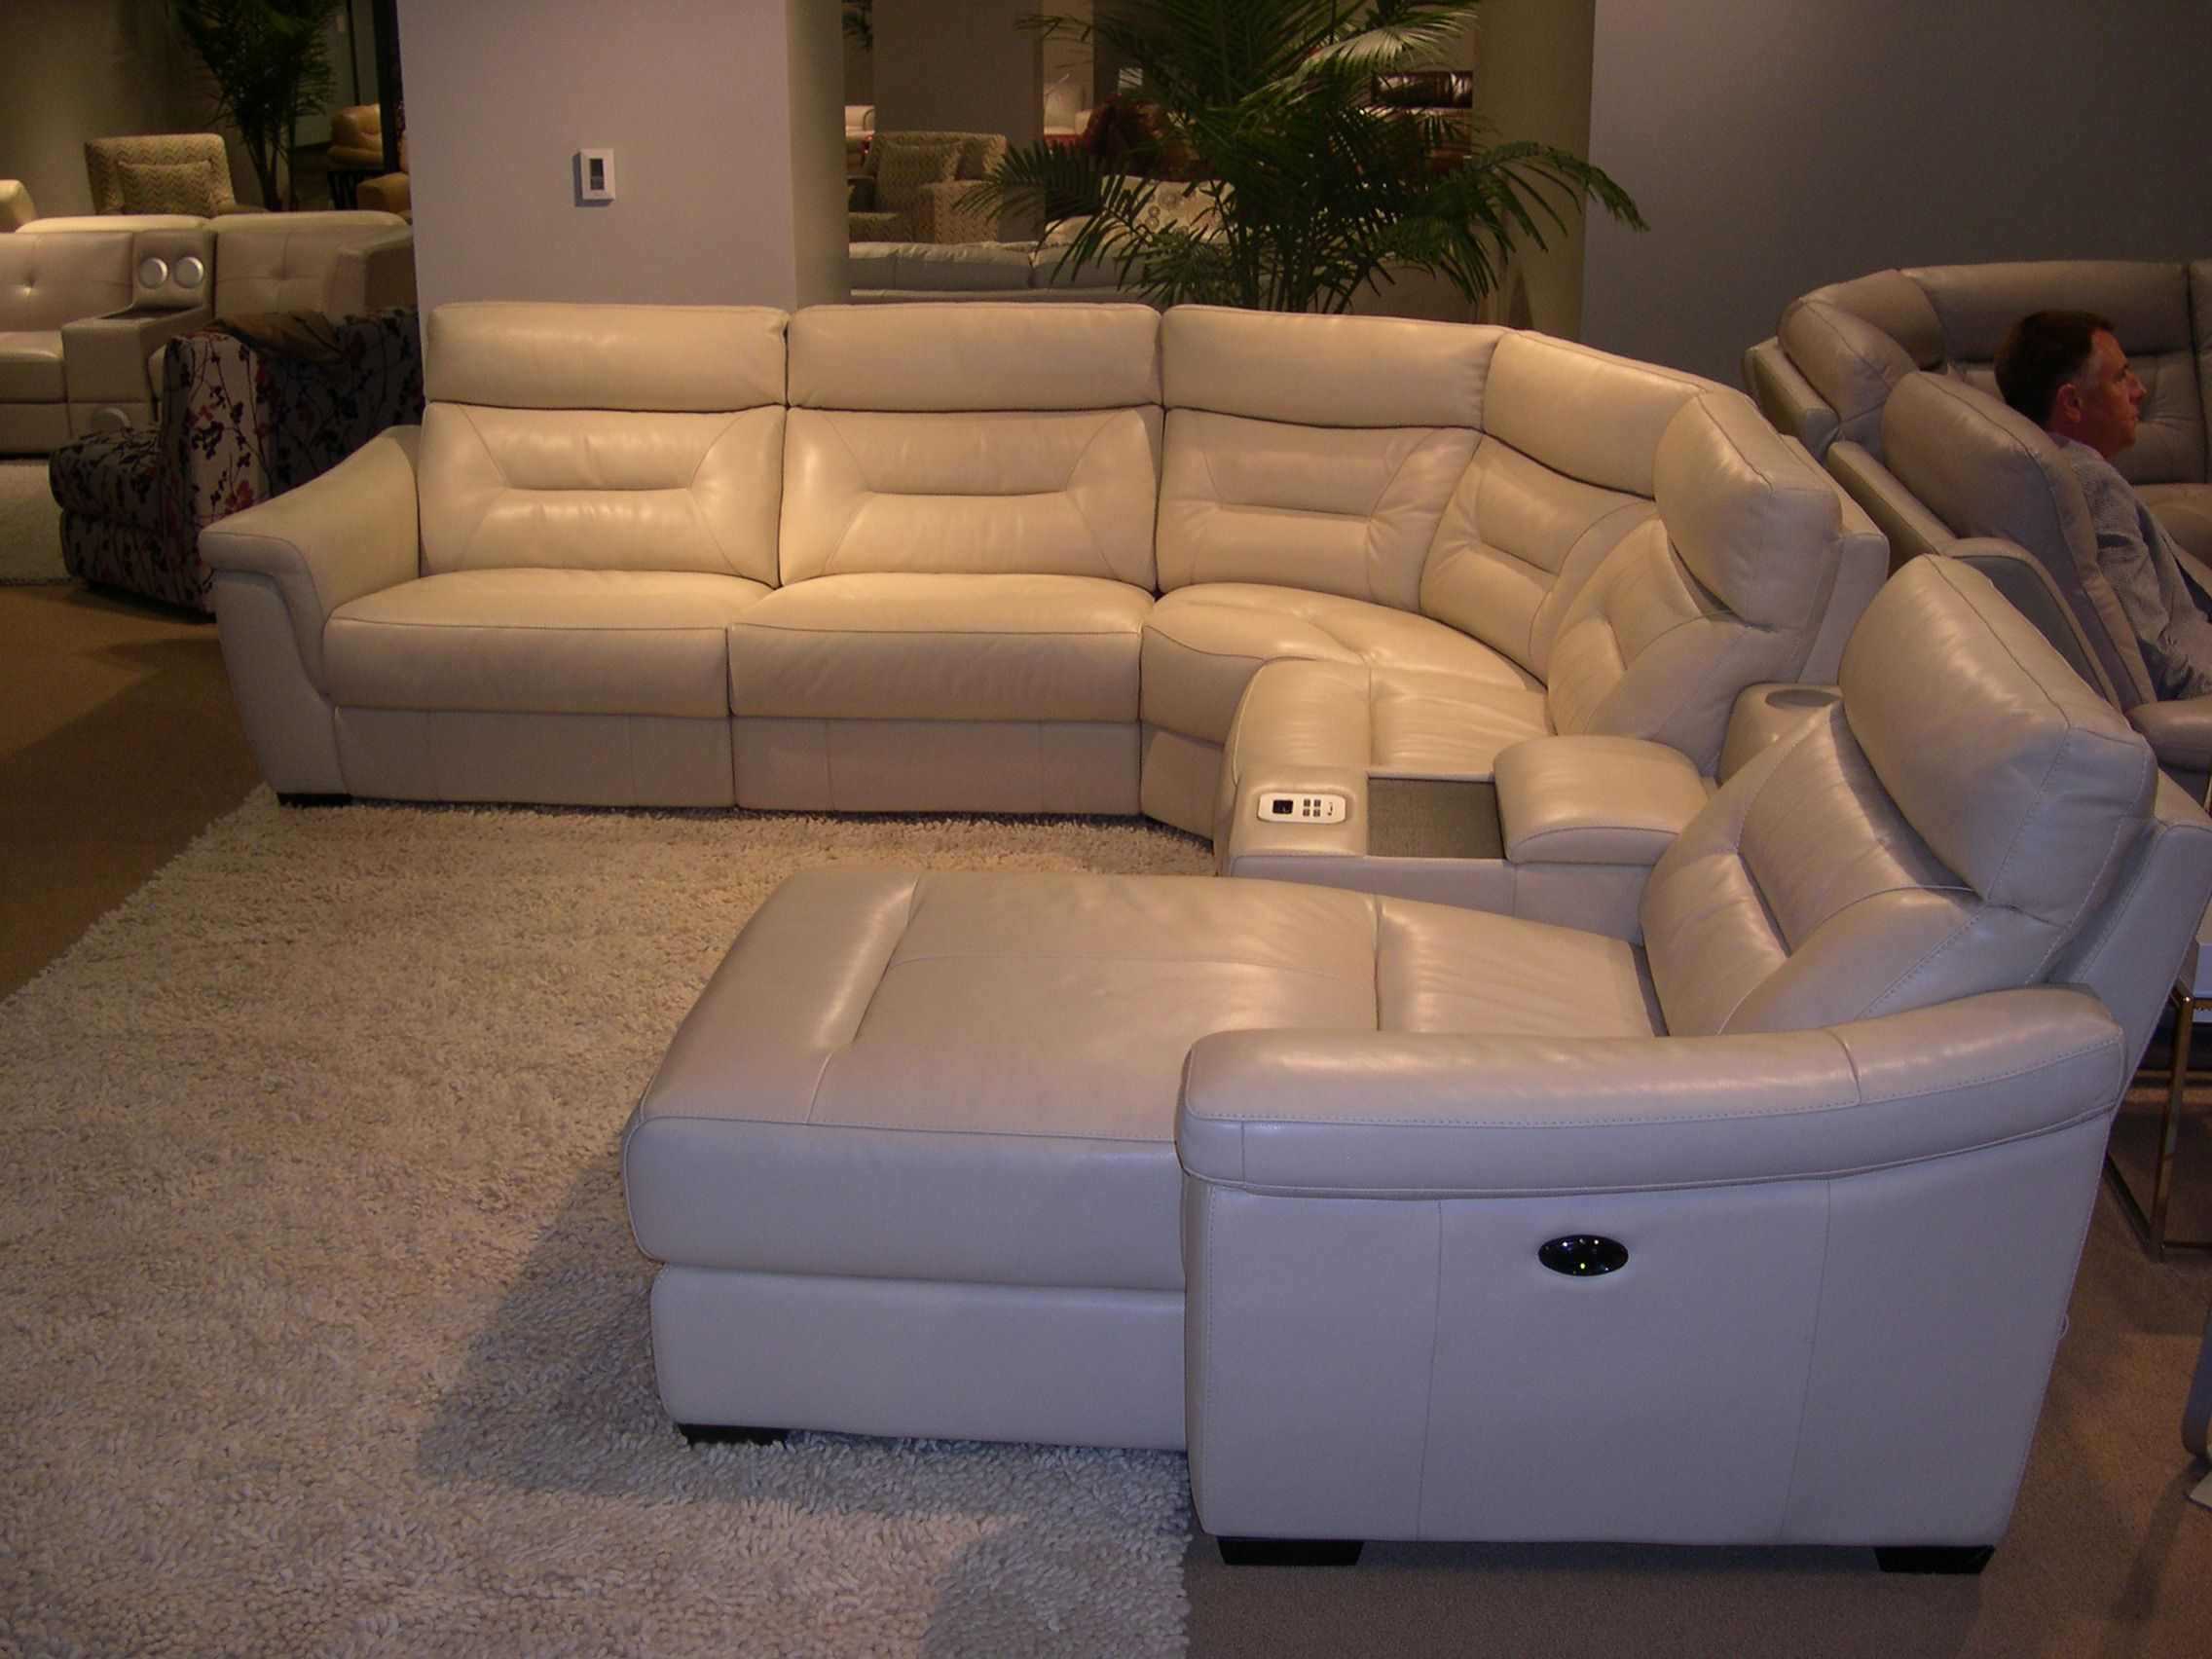 HTL Leather Sectional Adjustable headrests Note the built in